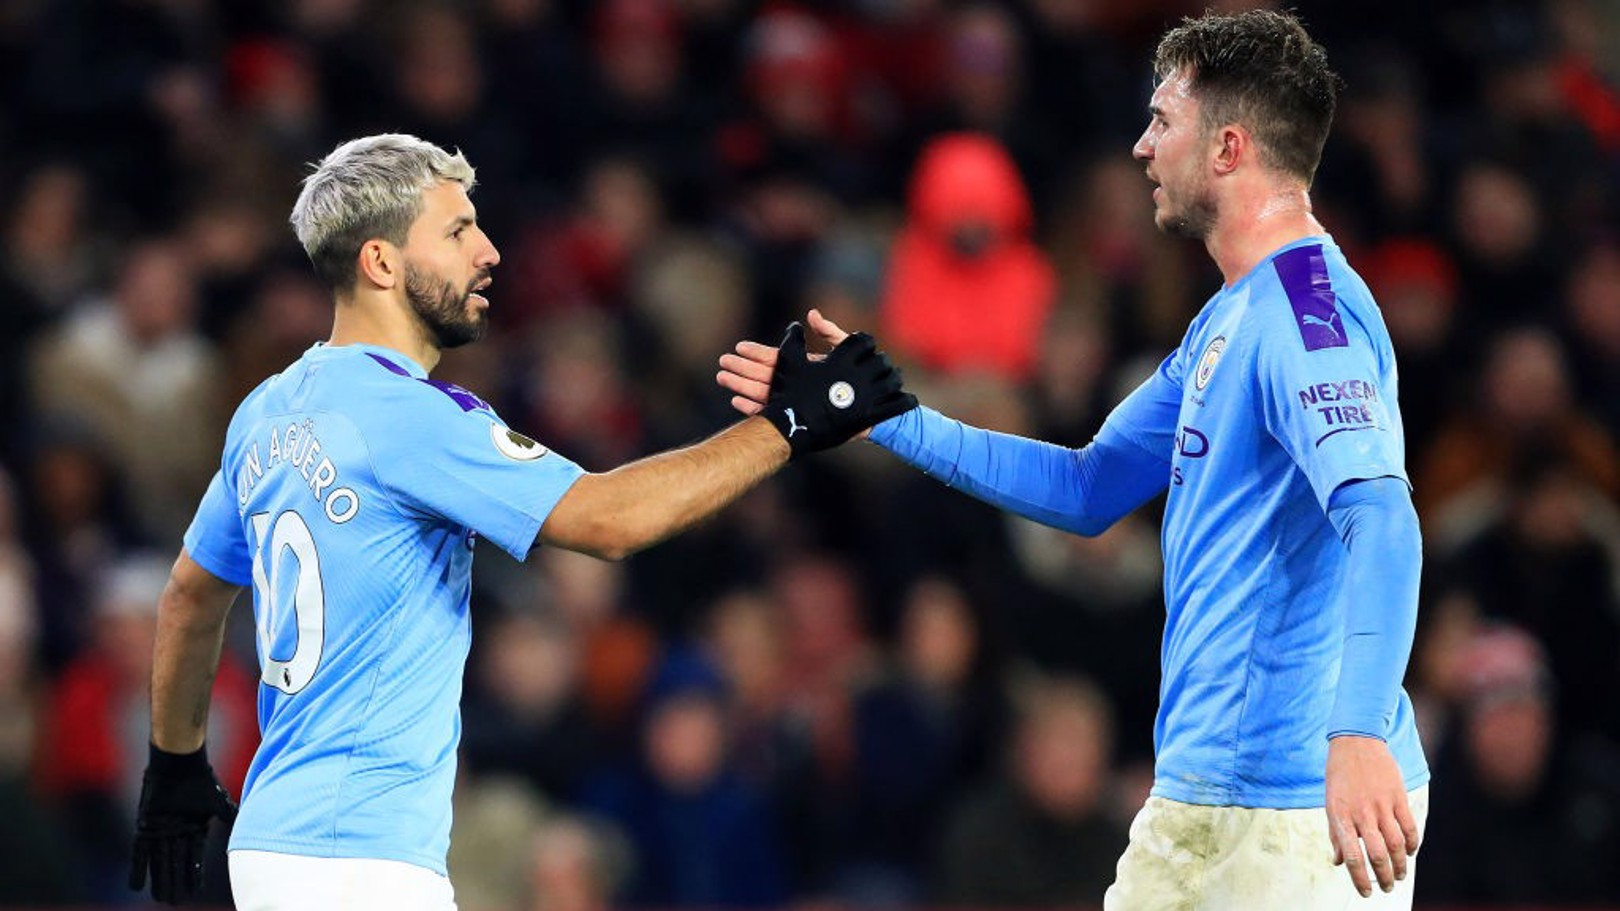 HIGH FIVE: Sergio Aguero celebrates with Aymeric Laporte.